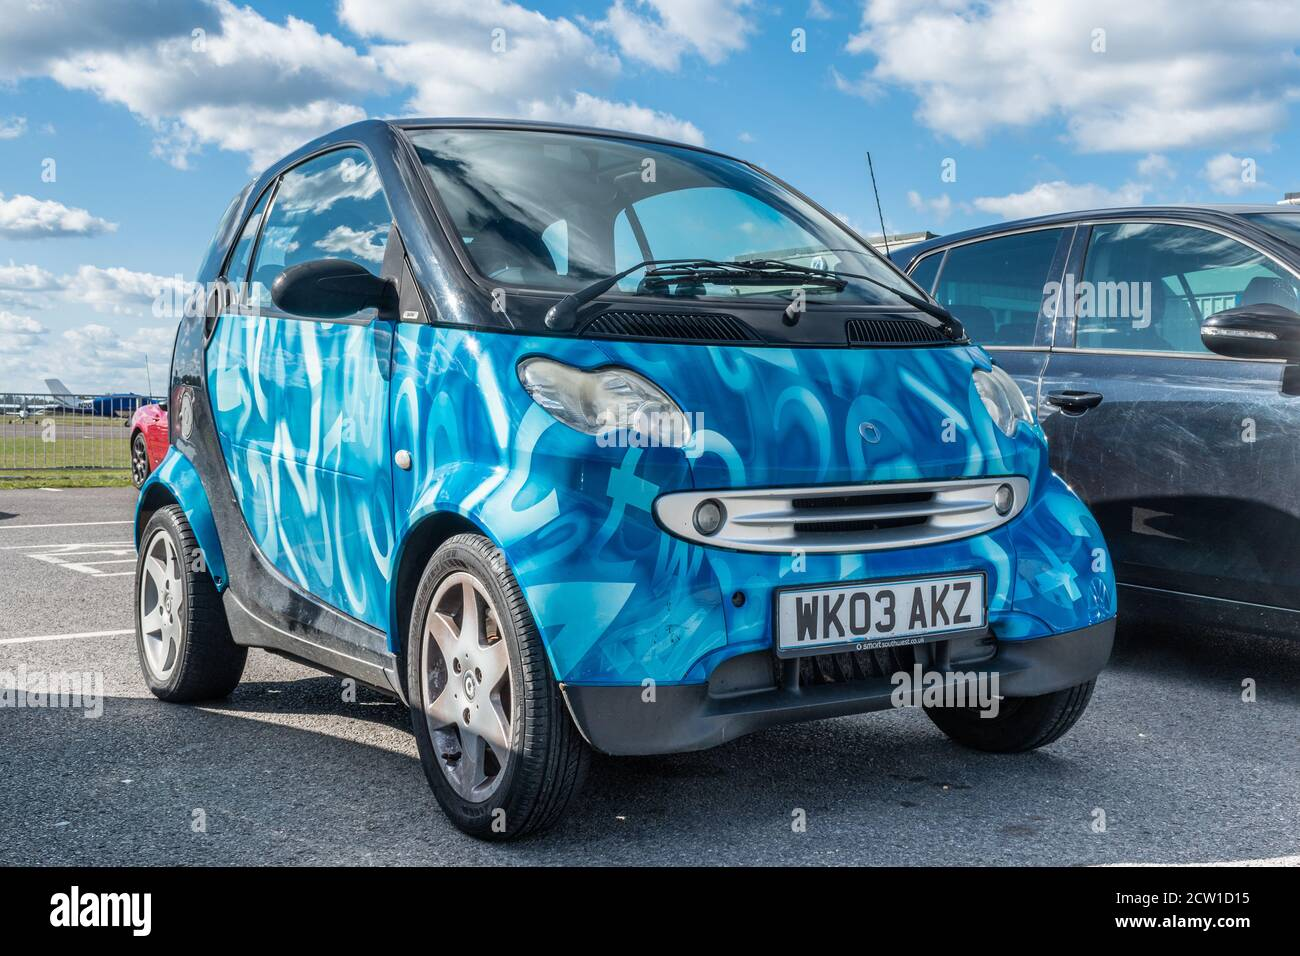 Smart Fortwo car, a two passenger hatchback microcar for city driving manufactured by Daimler Stock Photo